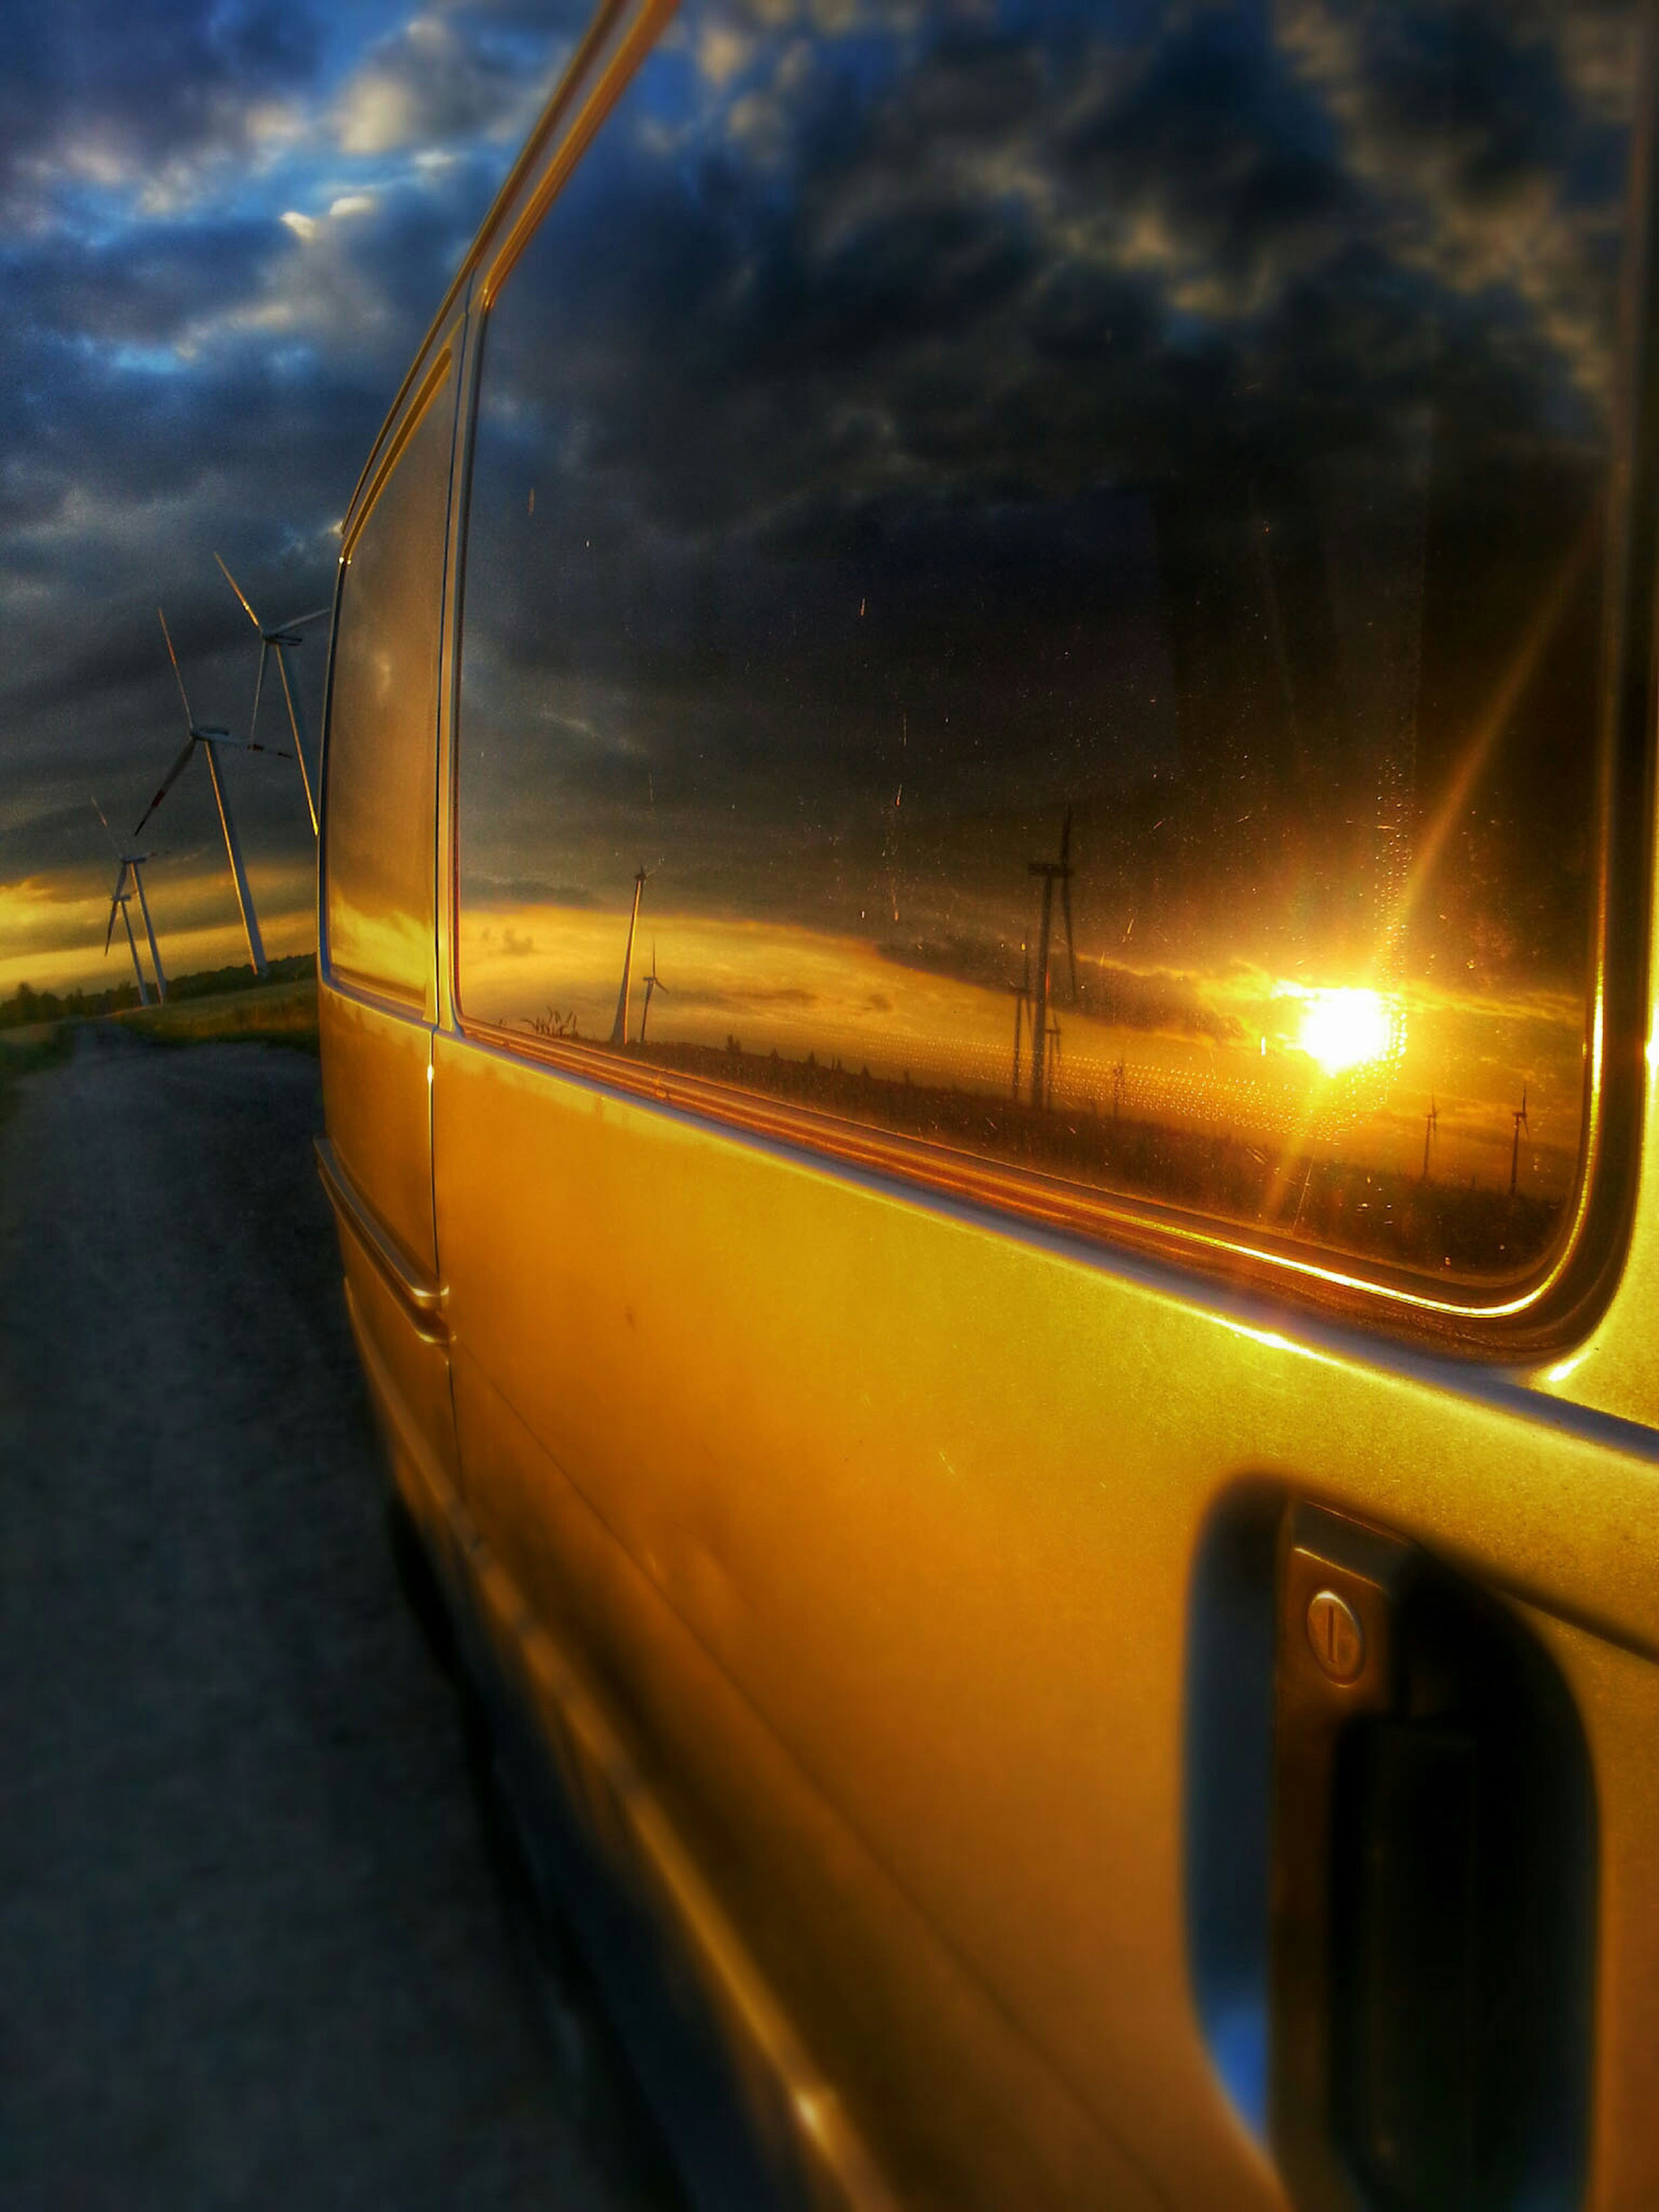 transportation, mode of transport, car, land vehicle, vehicle interior, sky, reflection, sunset, travel, glass - material, cloud - sky, on the move, side-view mirror, road, windshield, transparent, water, part of, cropped, car interior